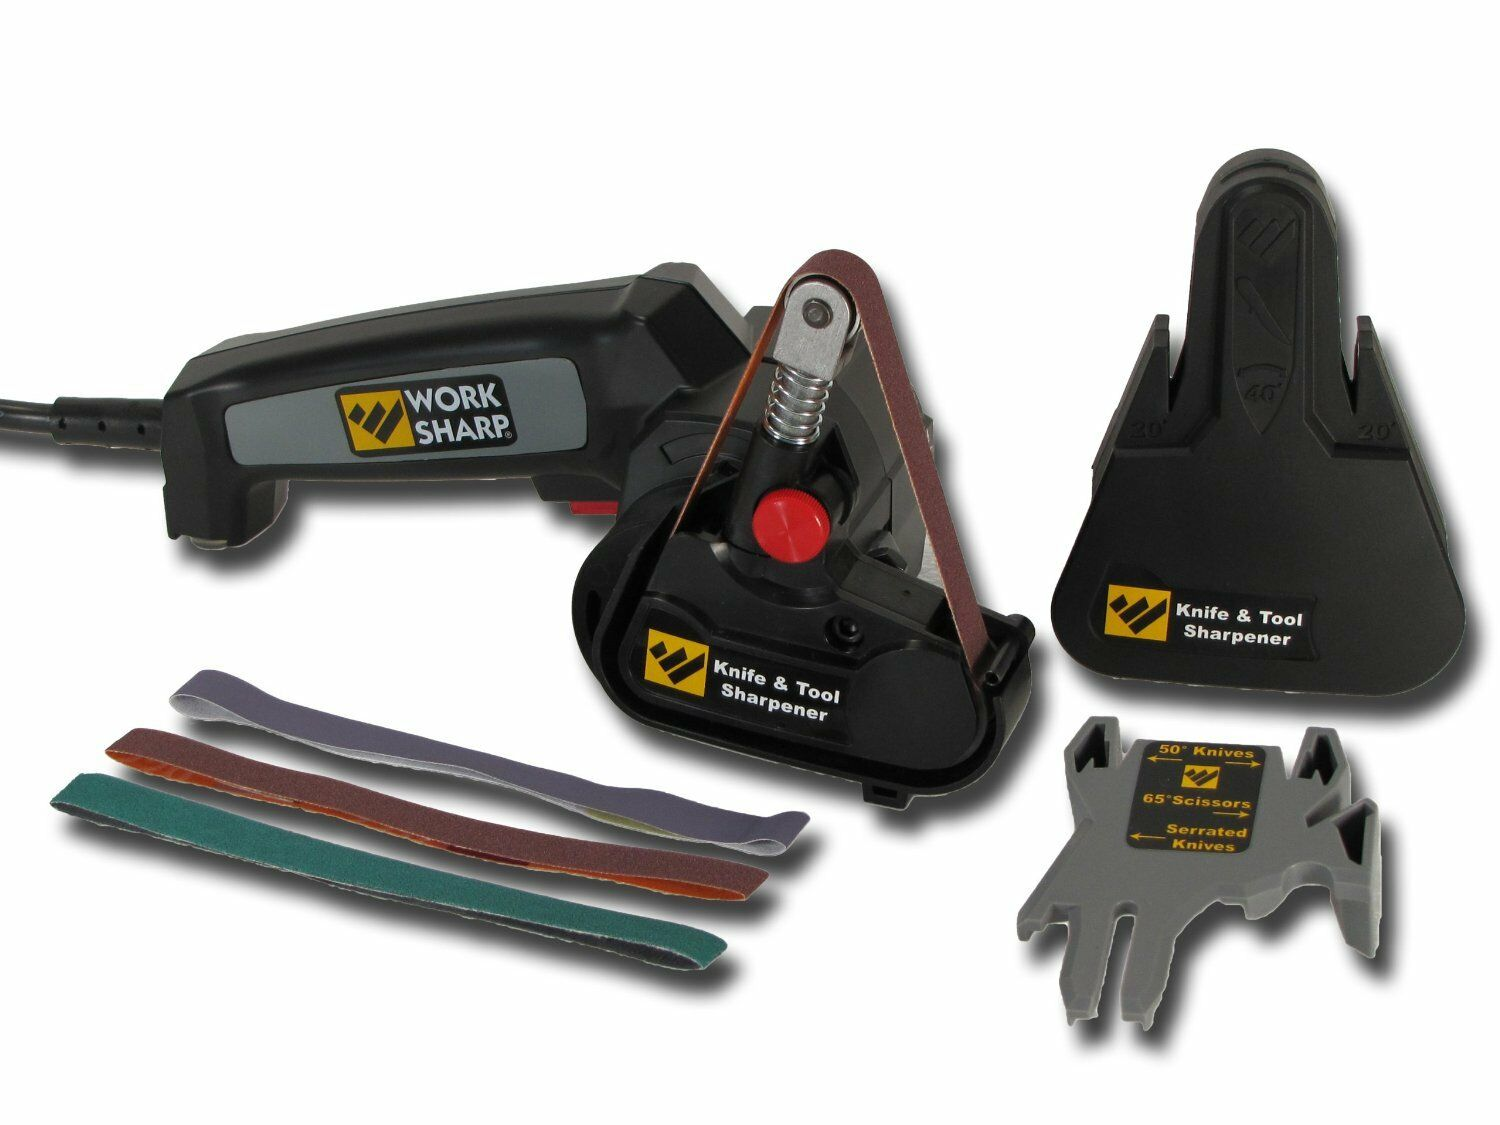 WORK SHARP WSKTS Knife and tool sharpener, WorkSharp